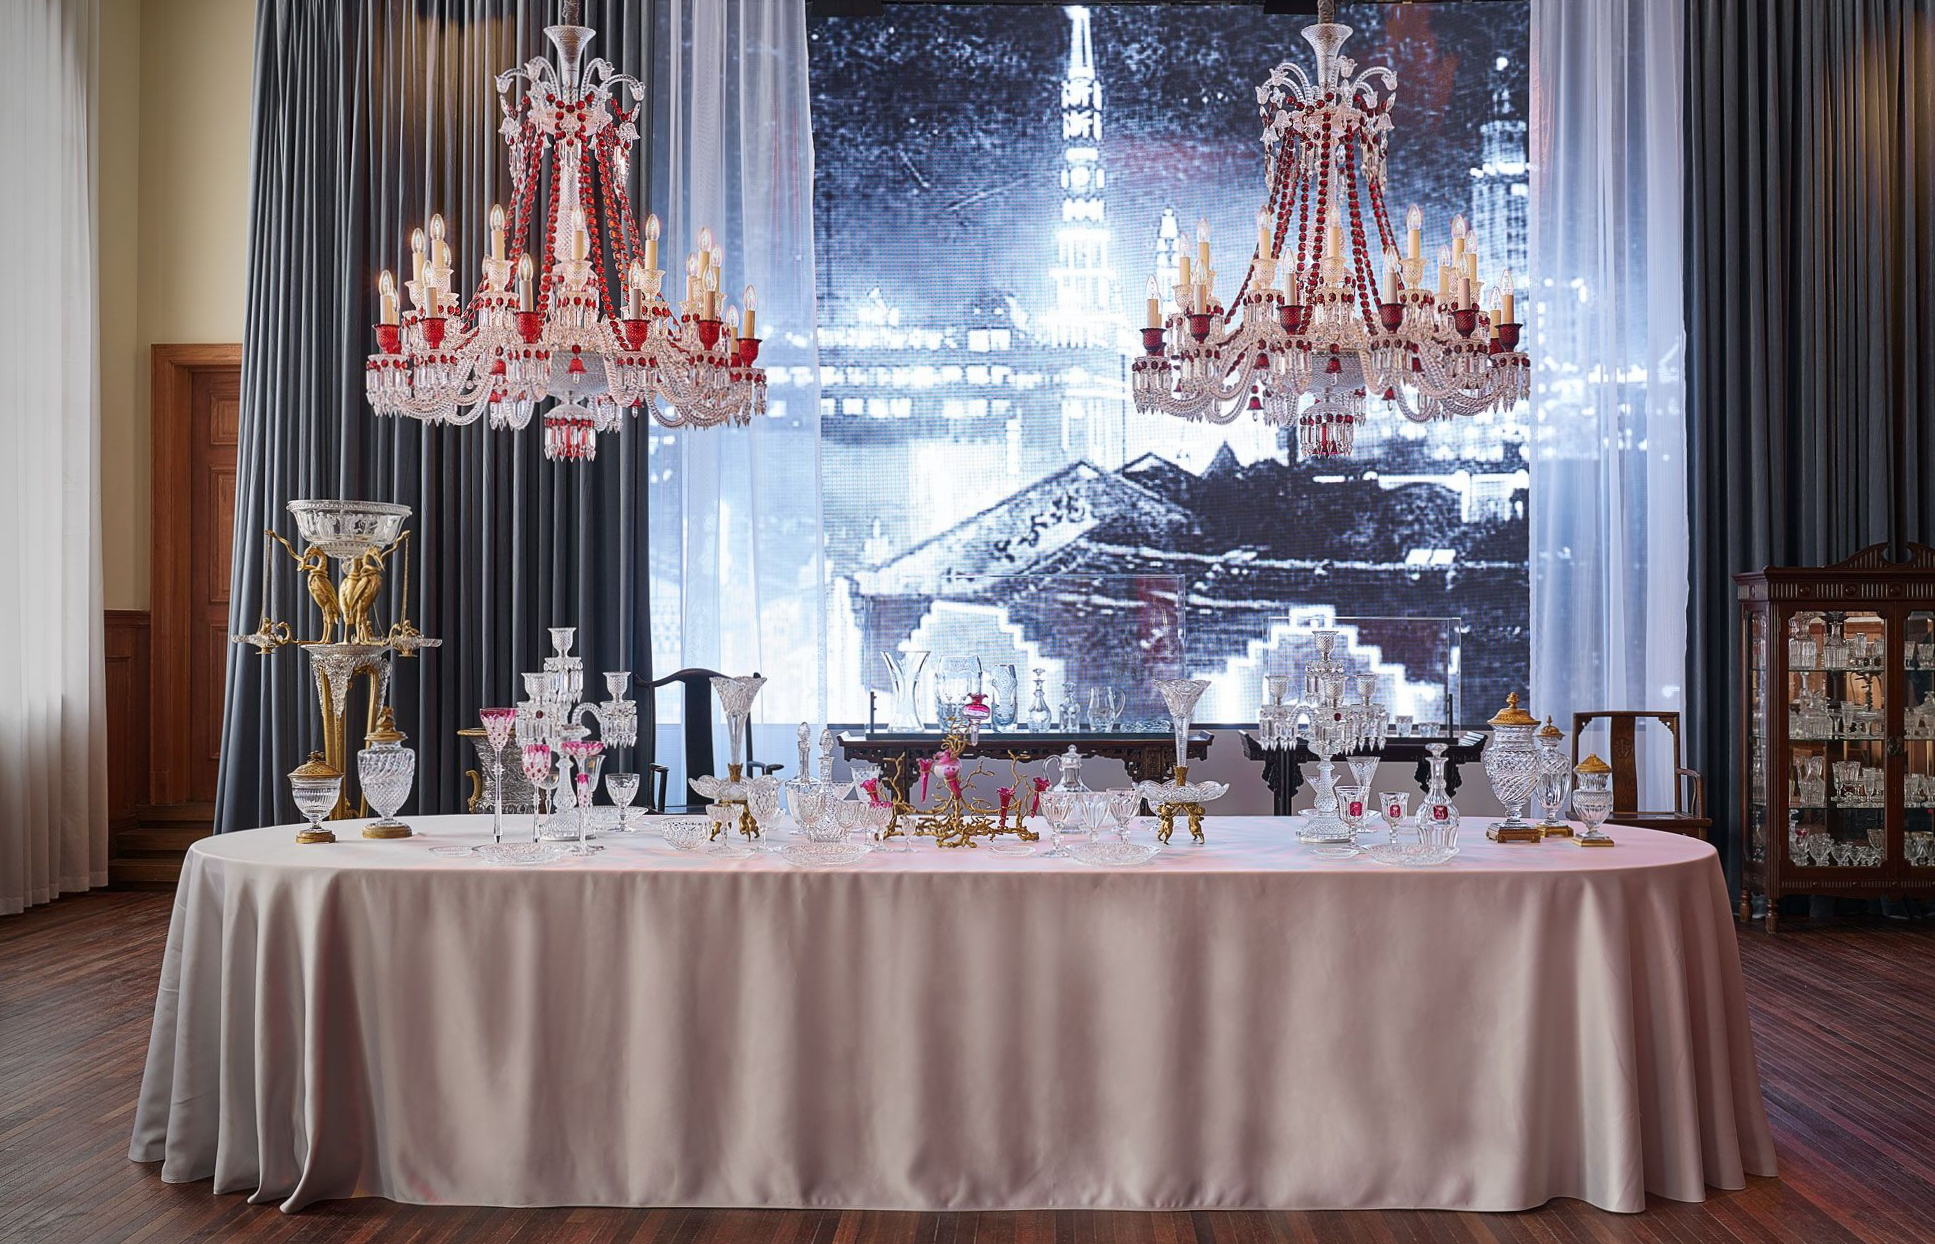 A table setting with chandeliers in the Baccarat Shanghai exhibition.